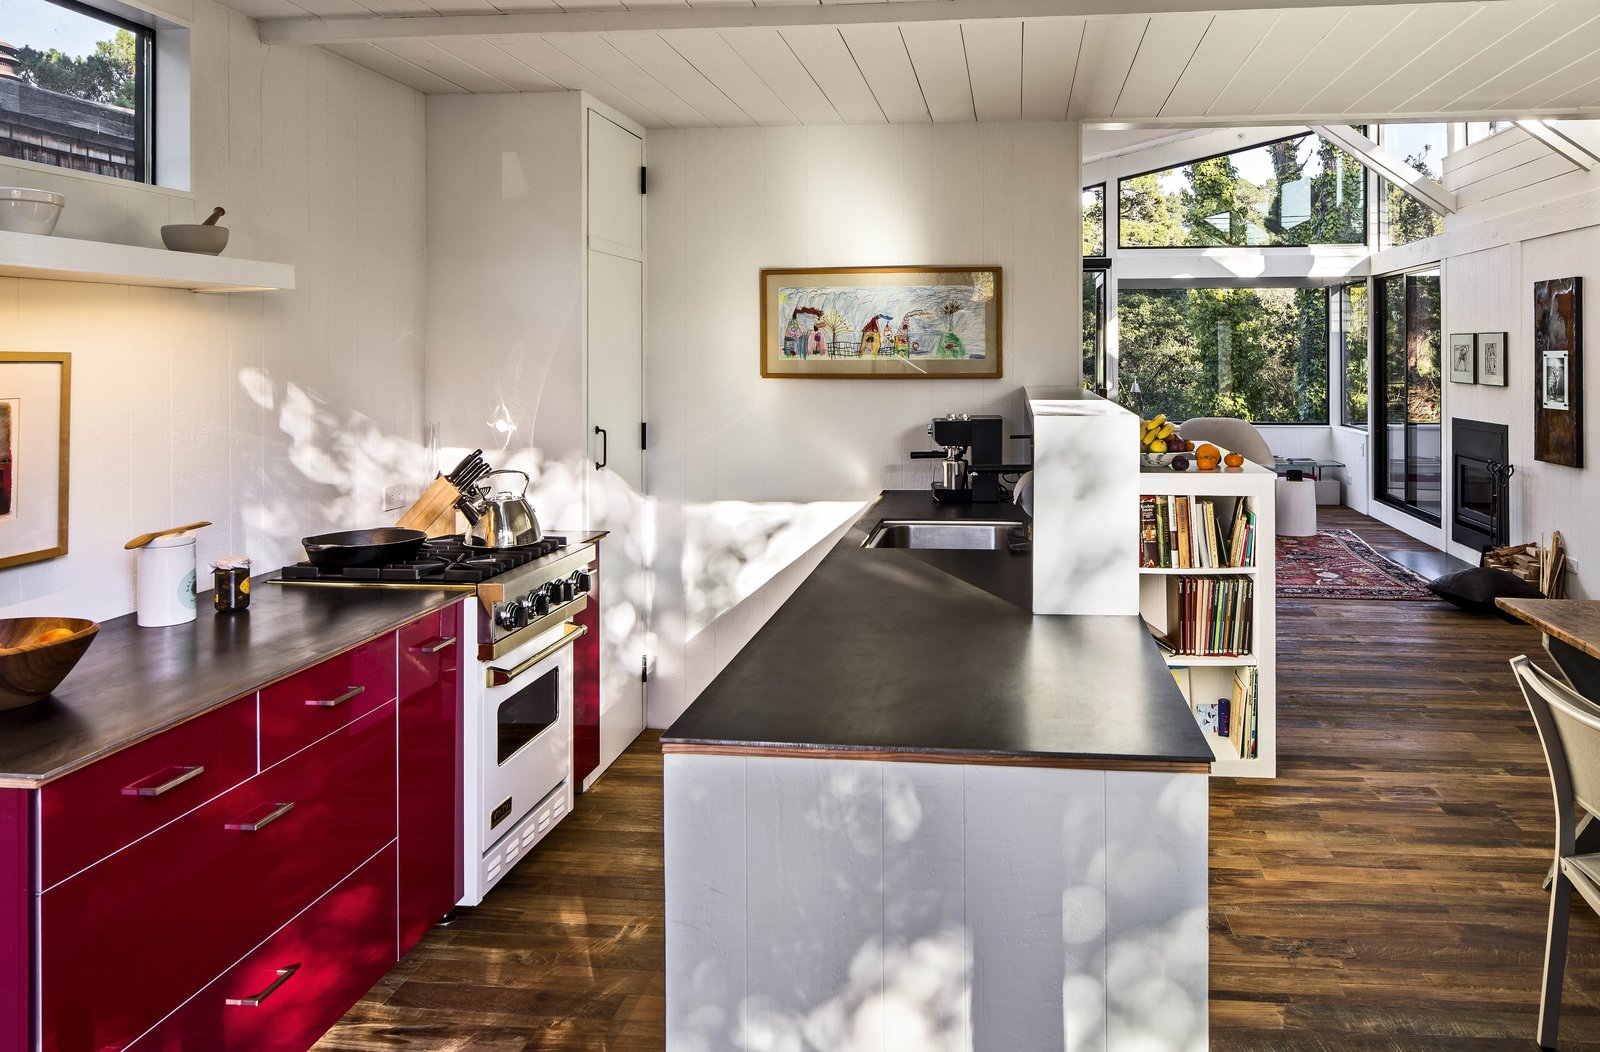 This house in Carmel by the Sea is enlivened by its very red kitchen cabinetry. By knocking down a dividing wall, the architects opened the kitchen up to the rest of the living space. Ikea red lacquer cabinetry and Caesarstone countertops replace dingy cupboards and old-fashioned finishes. Stainless steel appliances help ground the airy, open space.  Photo 7 of 10 in Bright Renovation of a 1970s Big Sur Home from Torres House